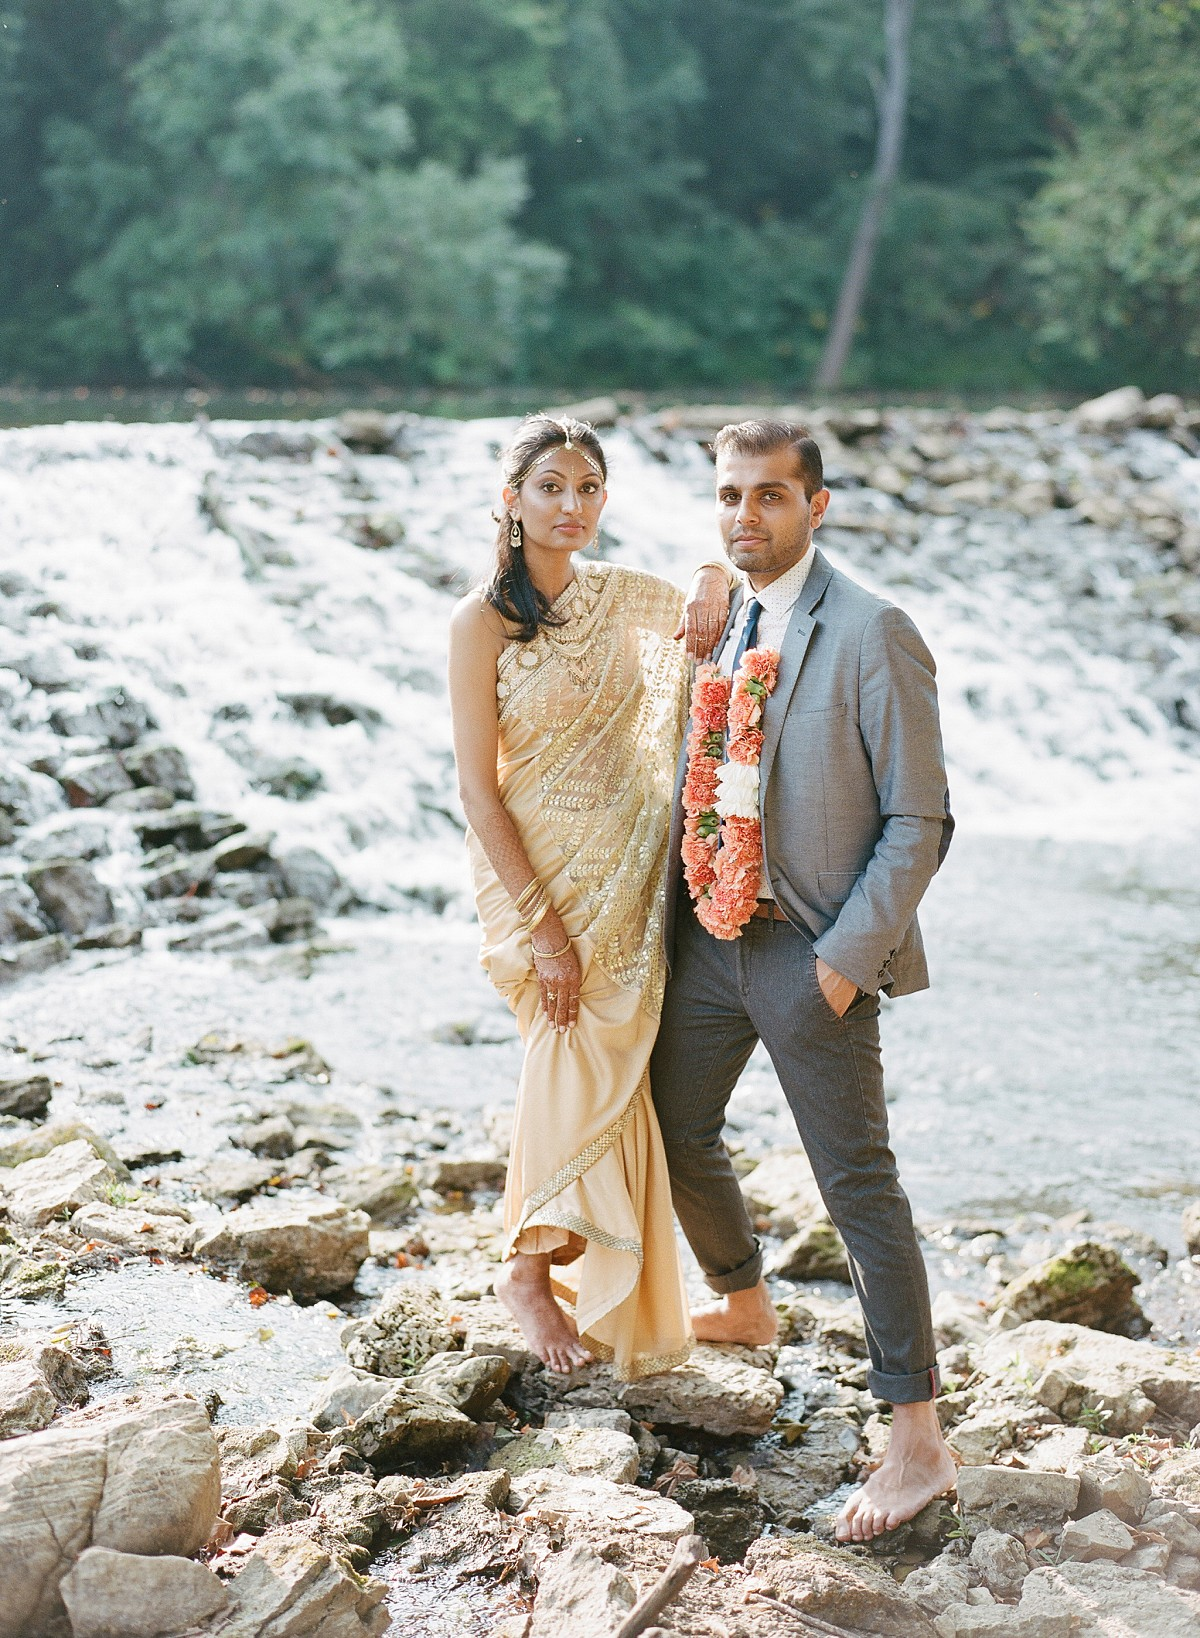 Indian wedding inspiration with tangerine, coral and sapphire tones